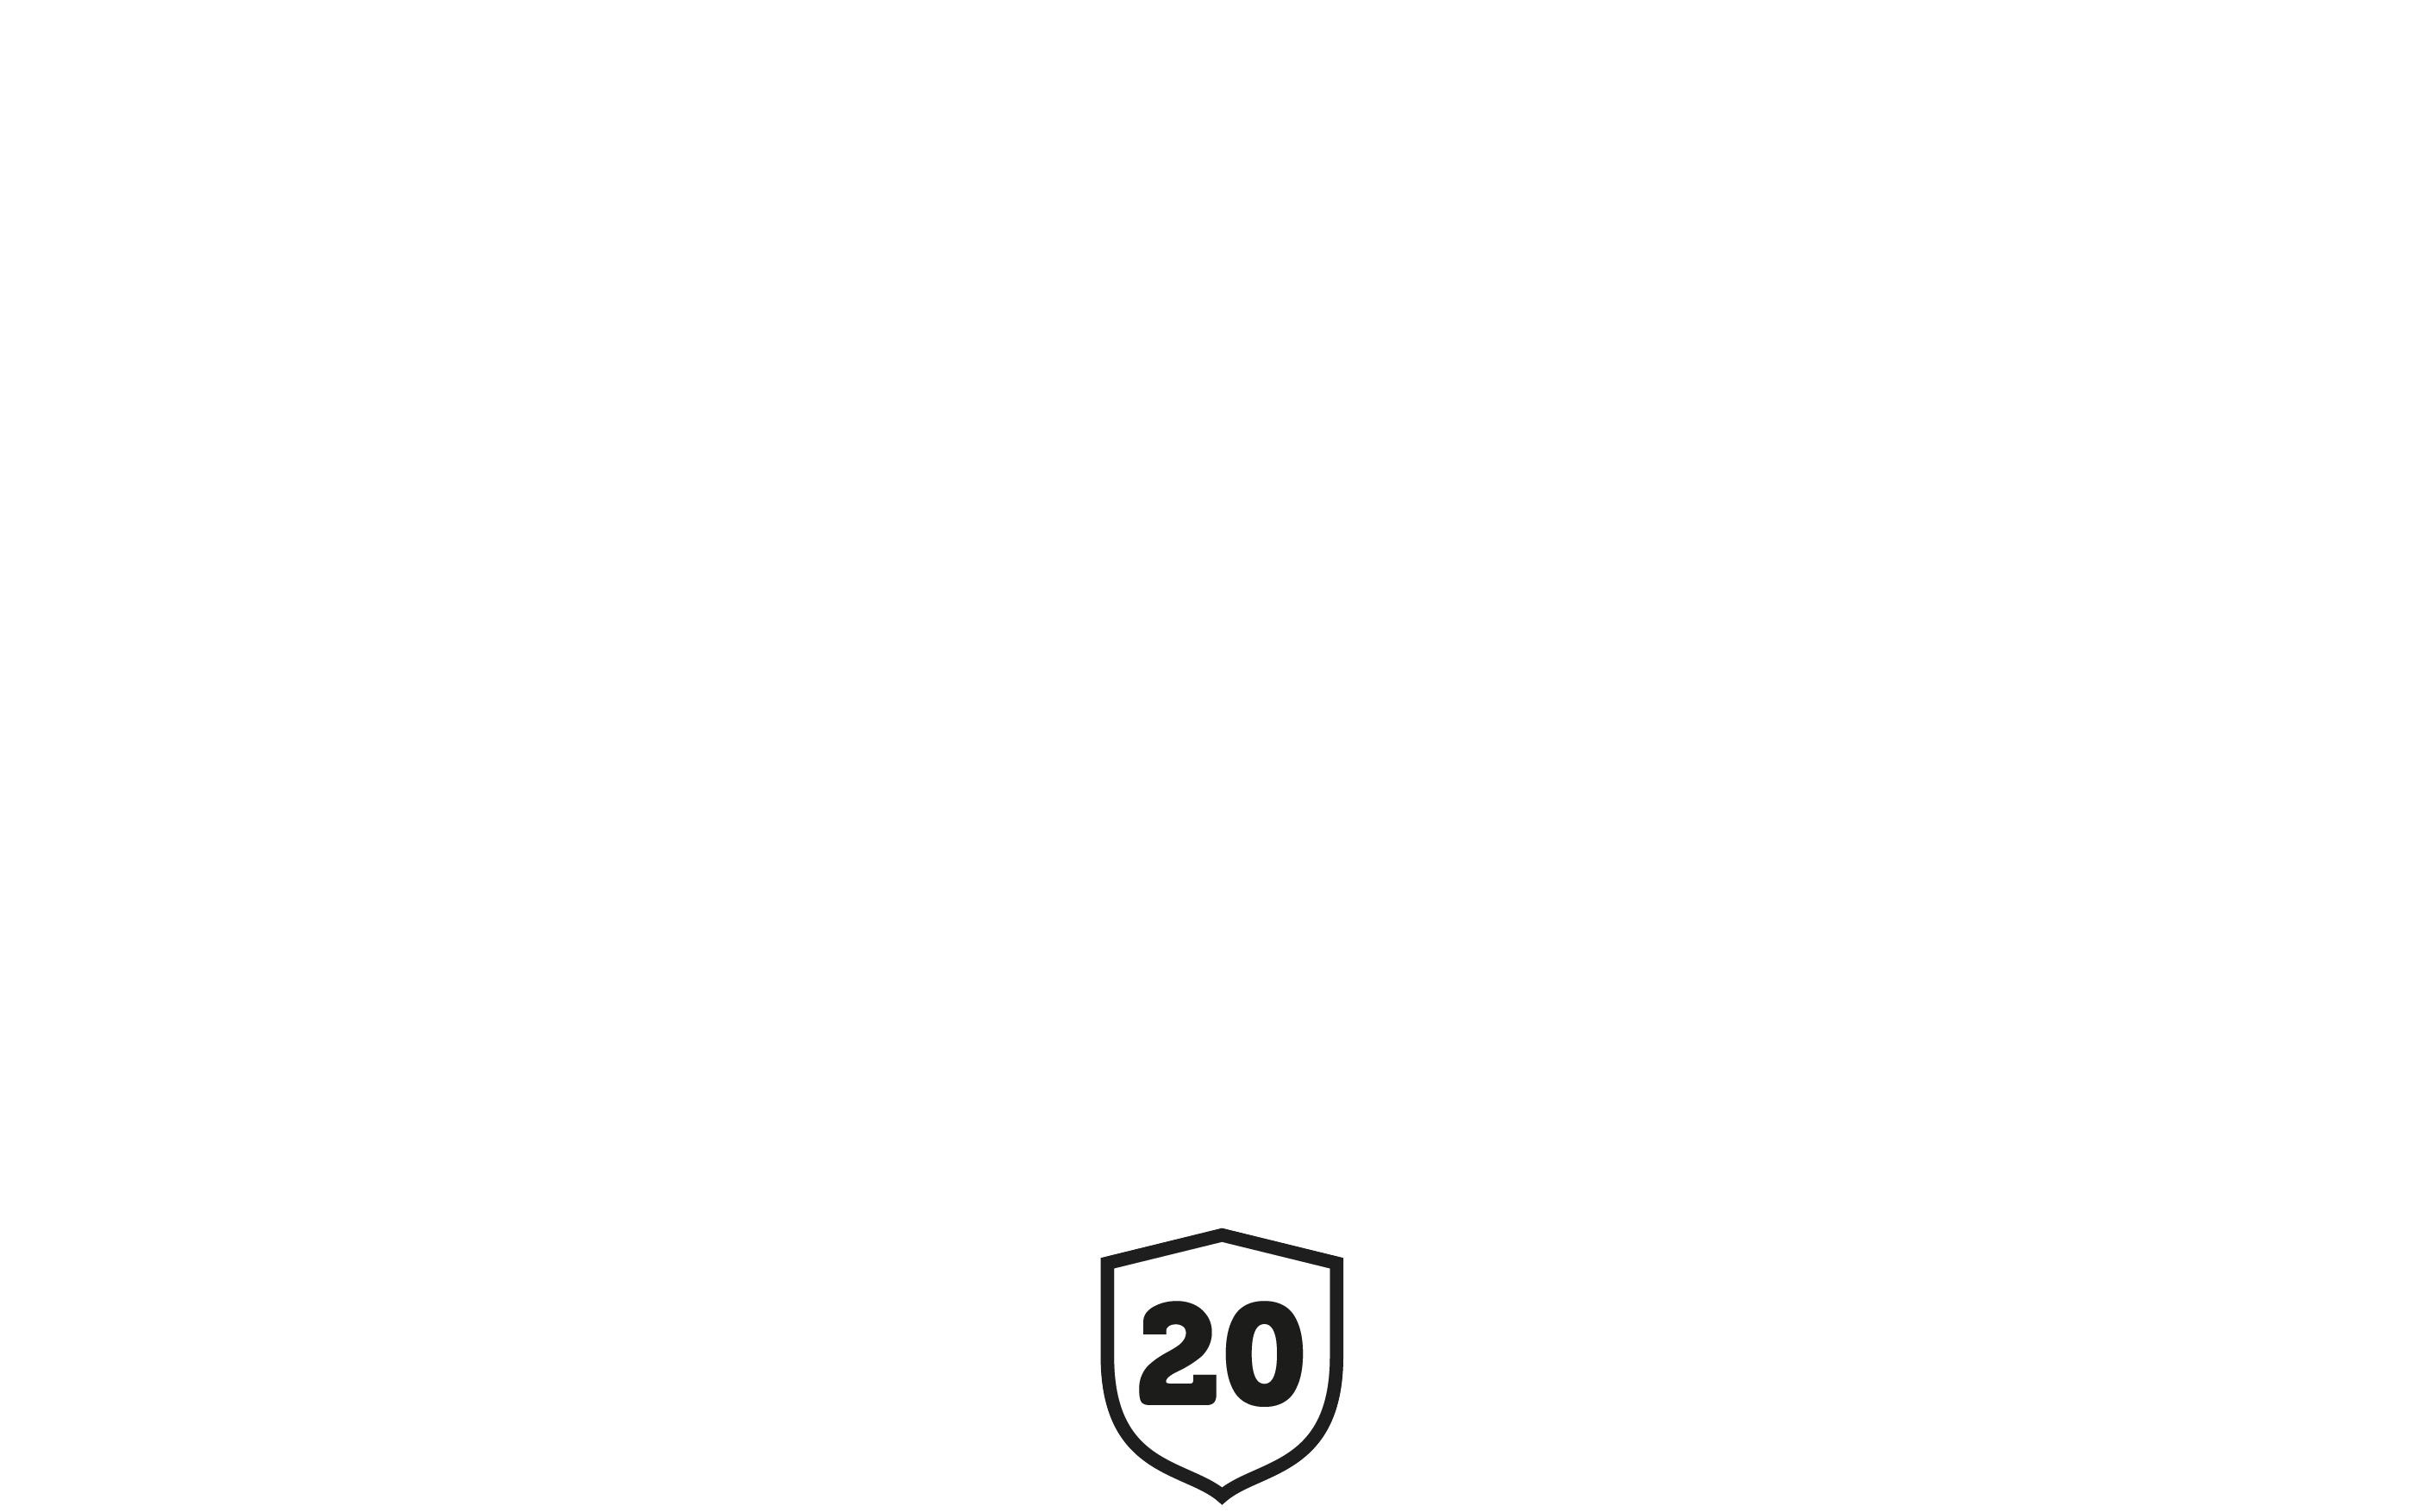 3Cars – Garage & Occasions Centre